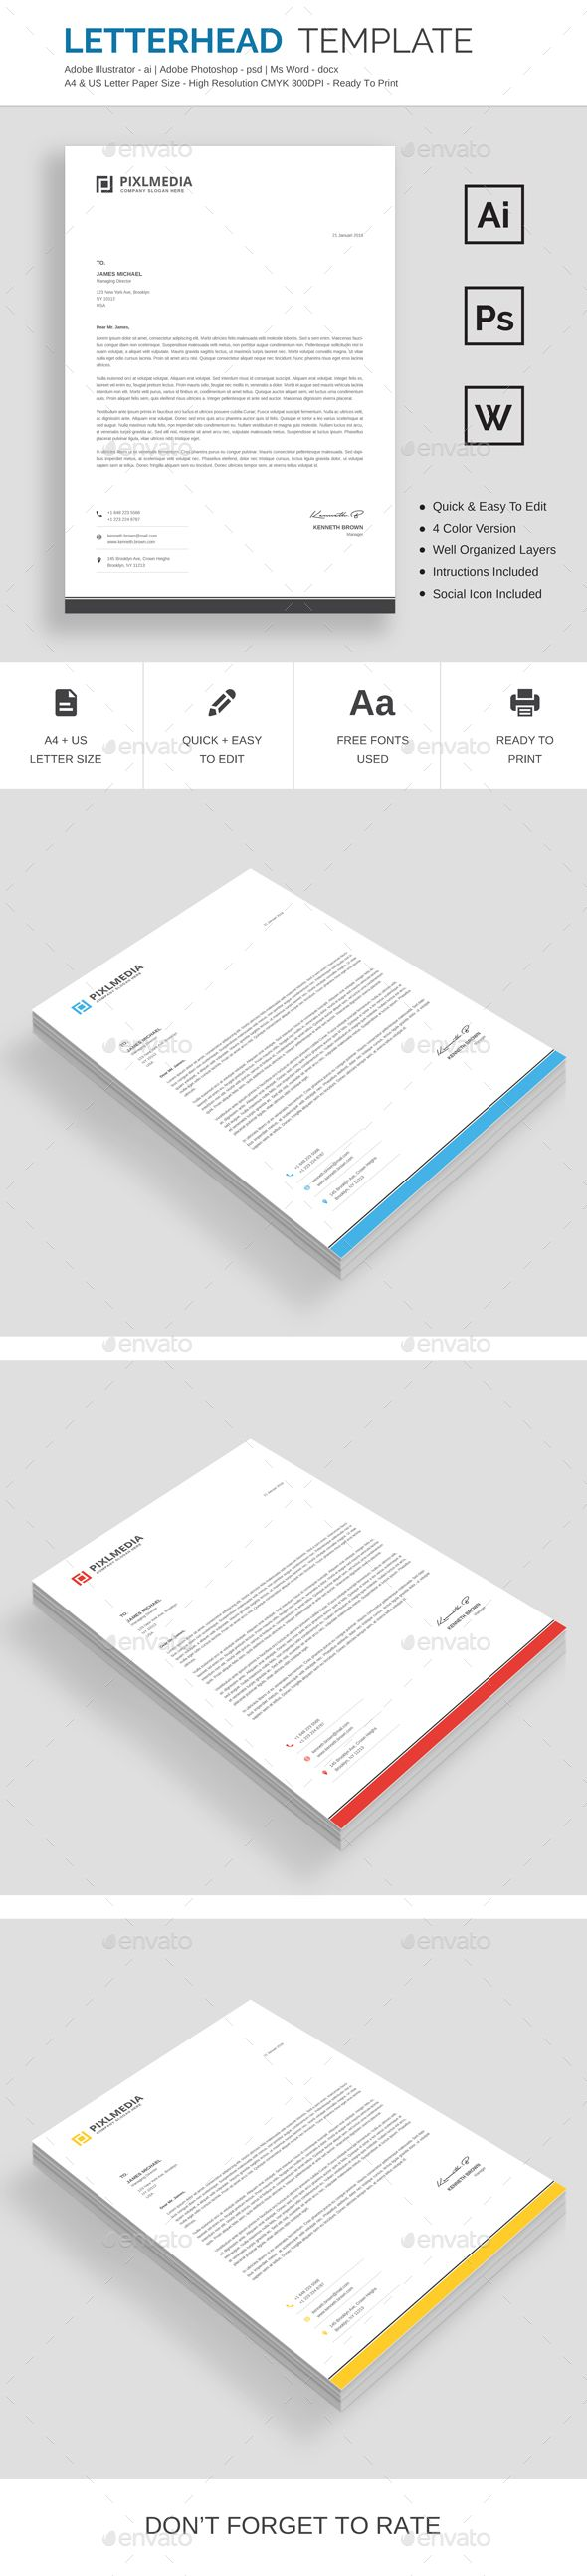 letterhead stationary examples